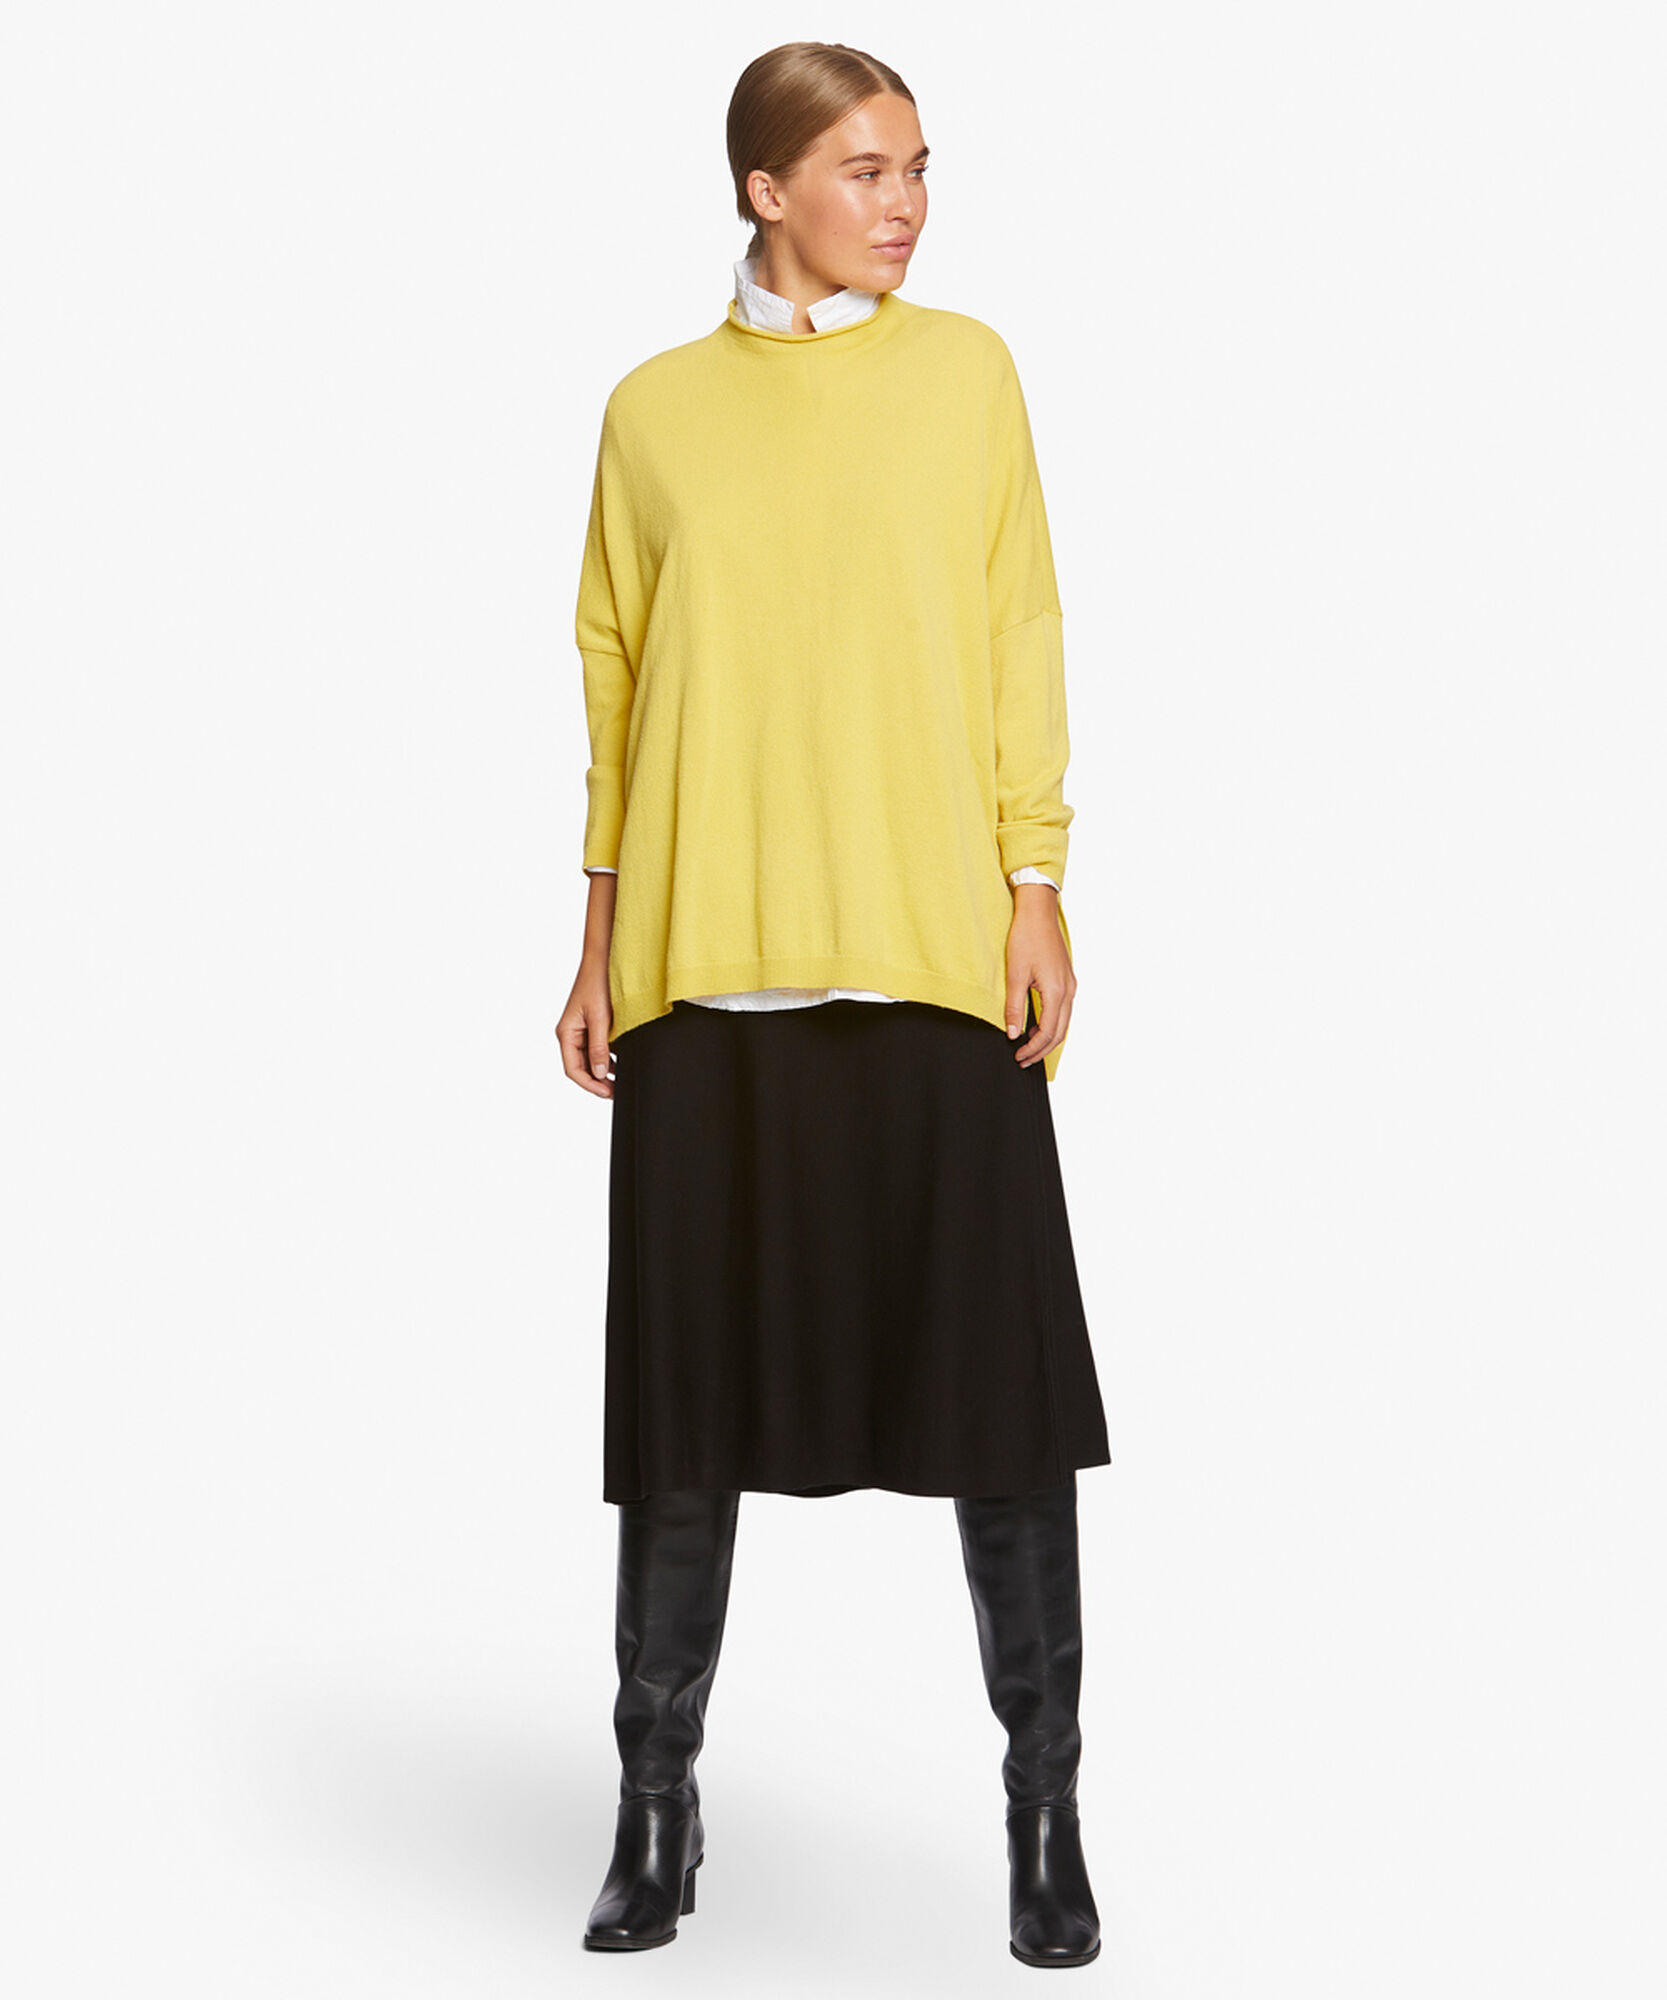 FINOLA TOP, Oil Yellow, hi-res